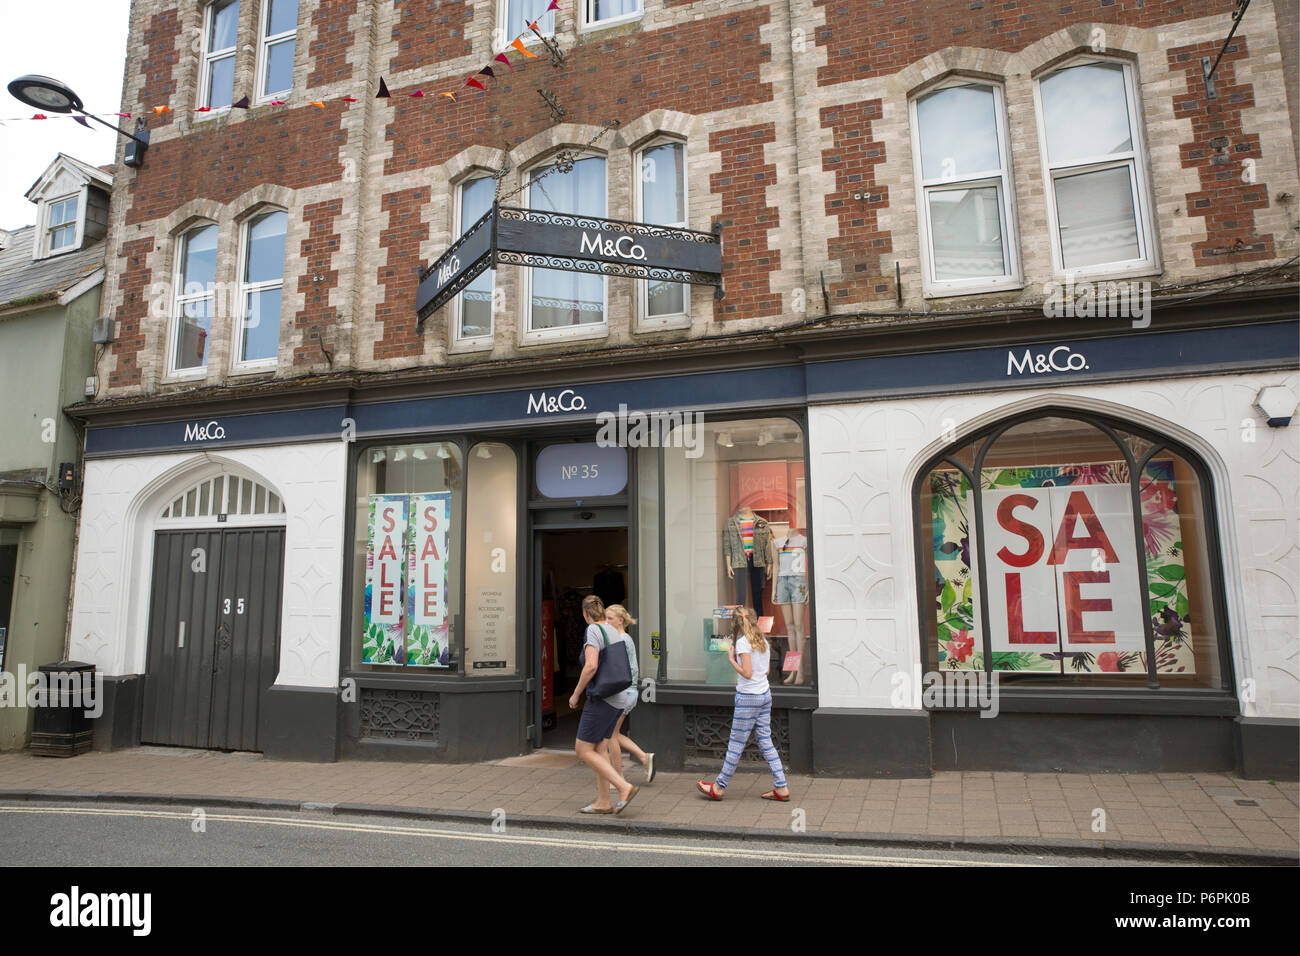 An M&Co store advertising a sale on the main street of Shaftesbury in North Dorset England UK GB. - Stock Image